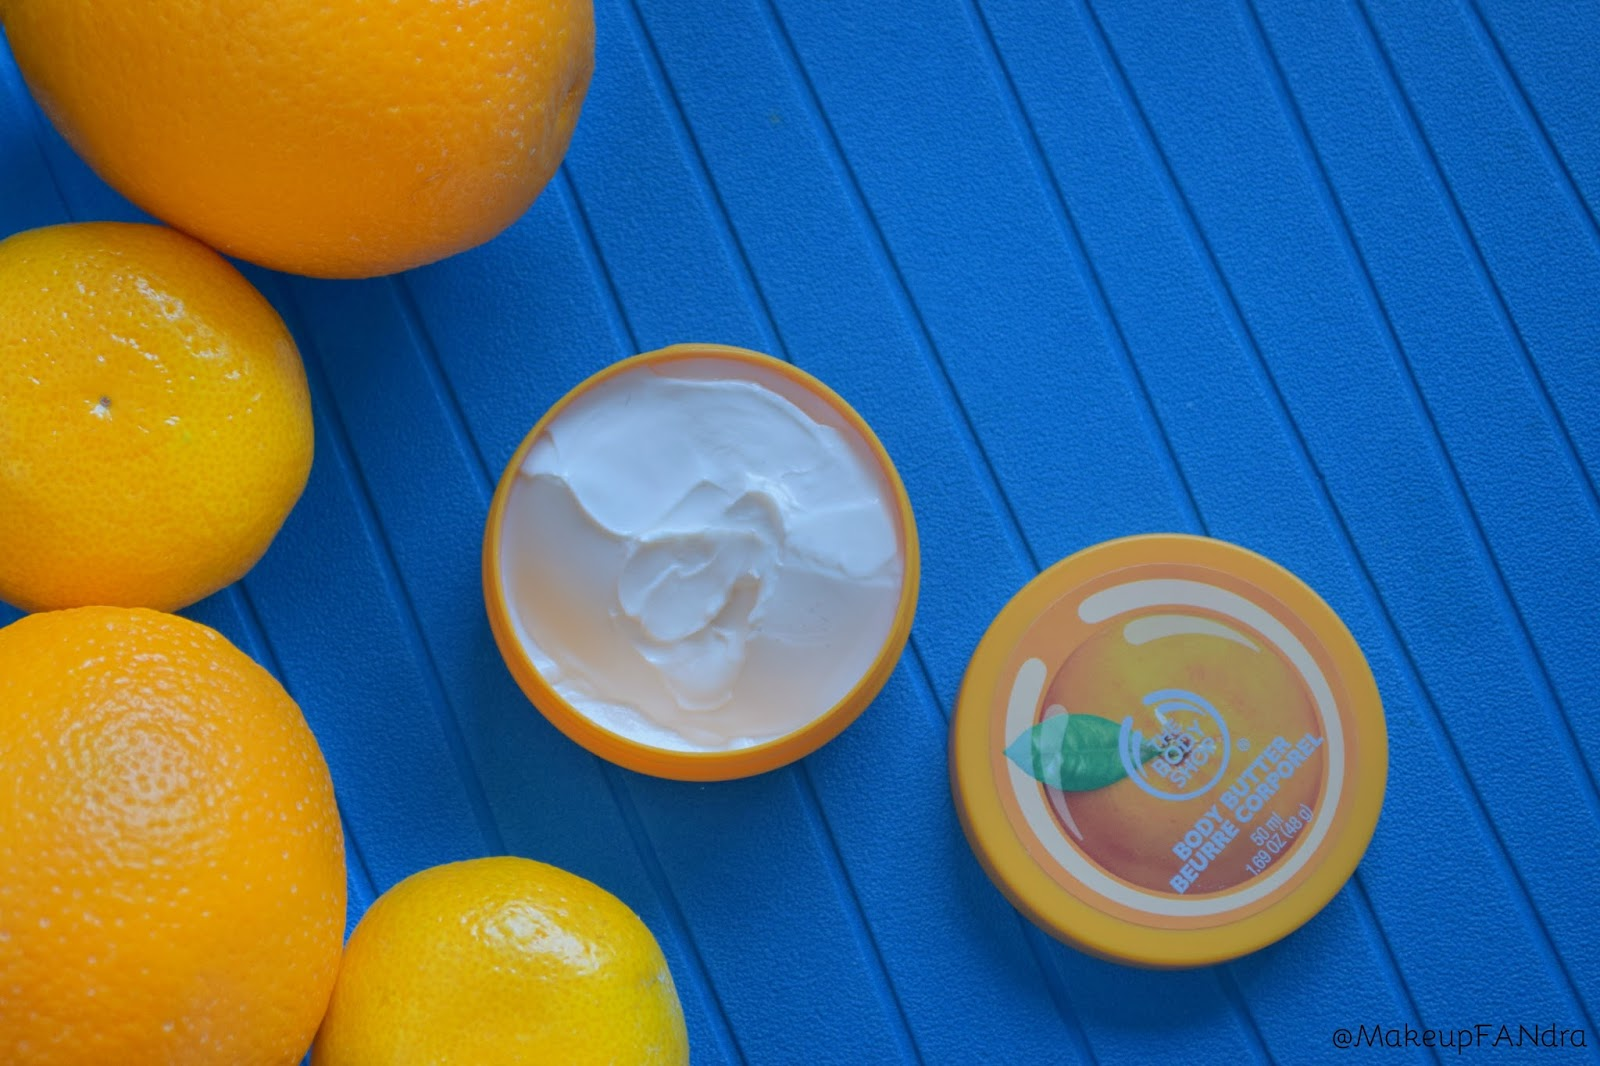 The body shop body butter satsuma 1